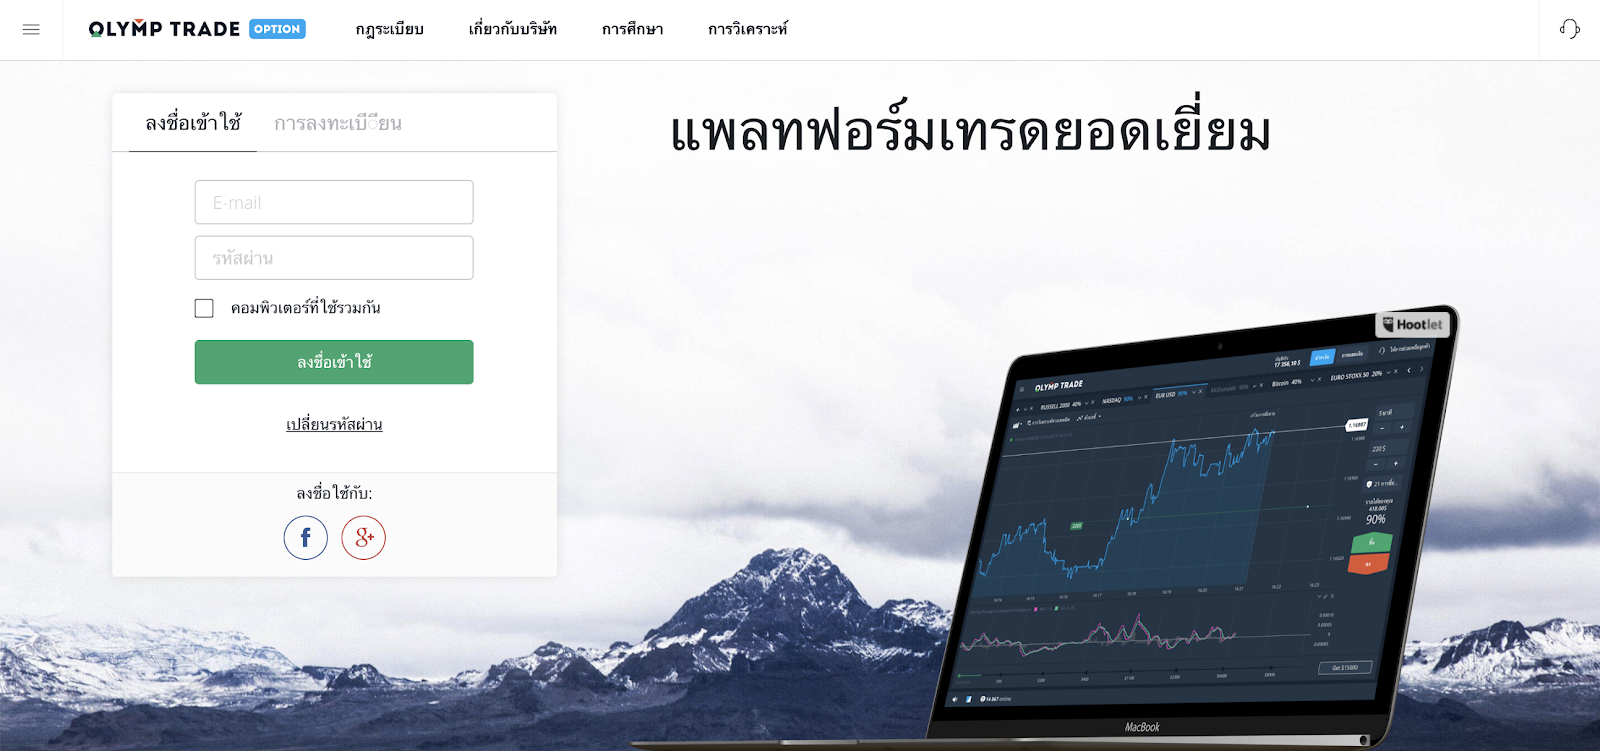 Magnificent words olymp trade หนังสือ commit error